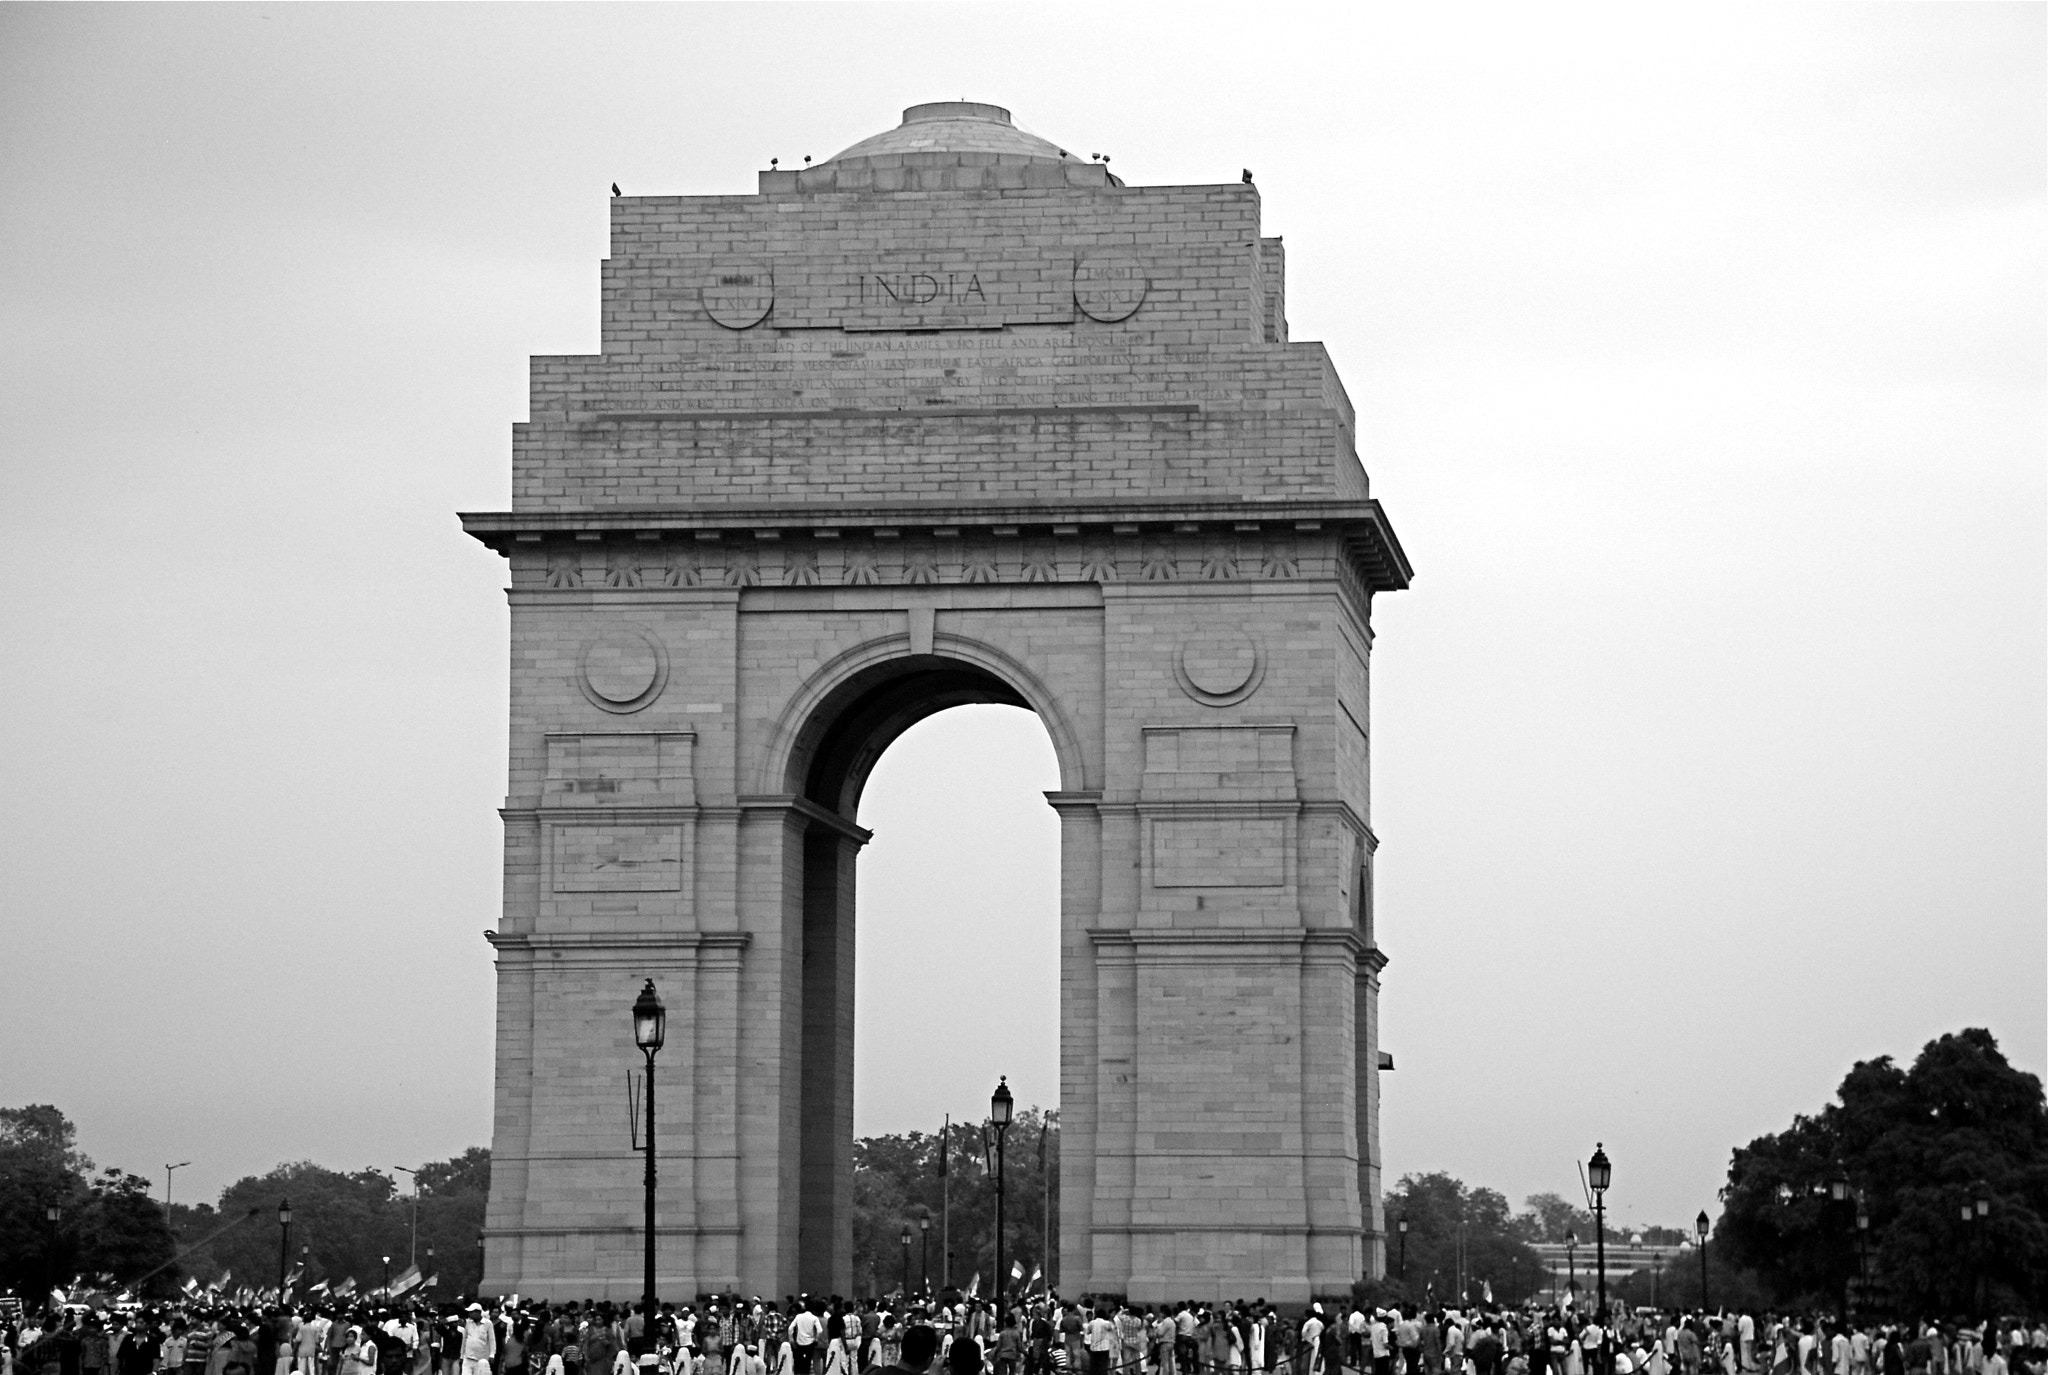 Photograph Door of the Indian - New Delhi by Tommysalasphoto on 500px